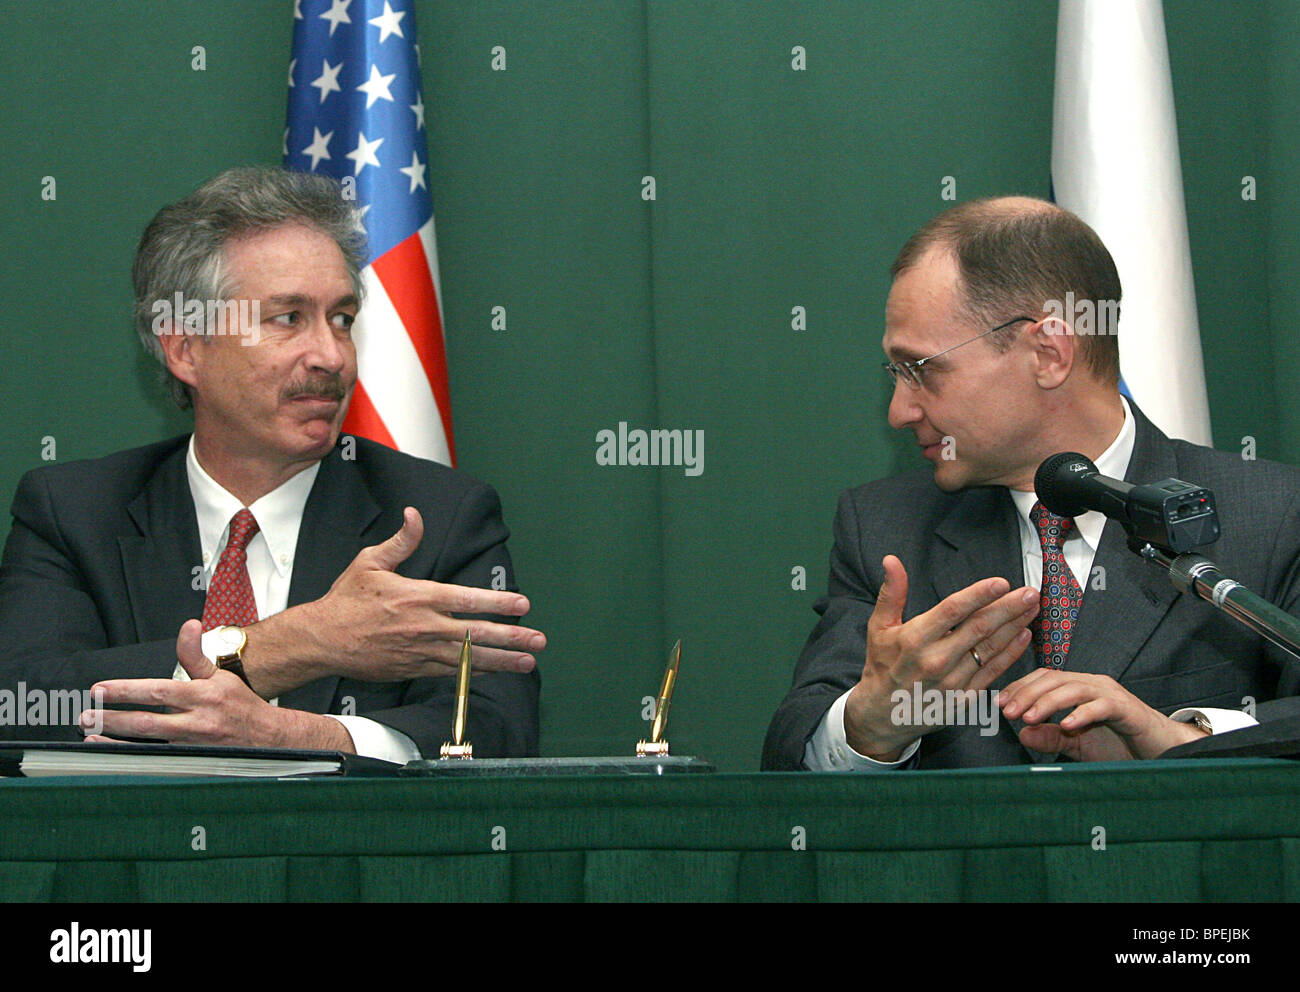 Russia and U.S. sign civilian nuclear deal - Stock Image